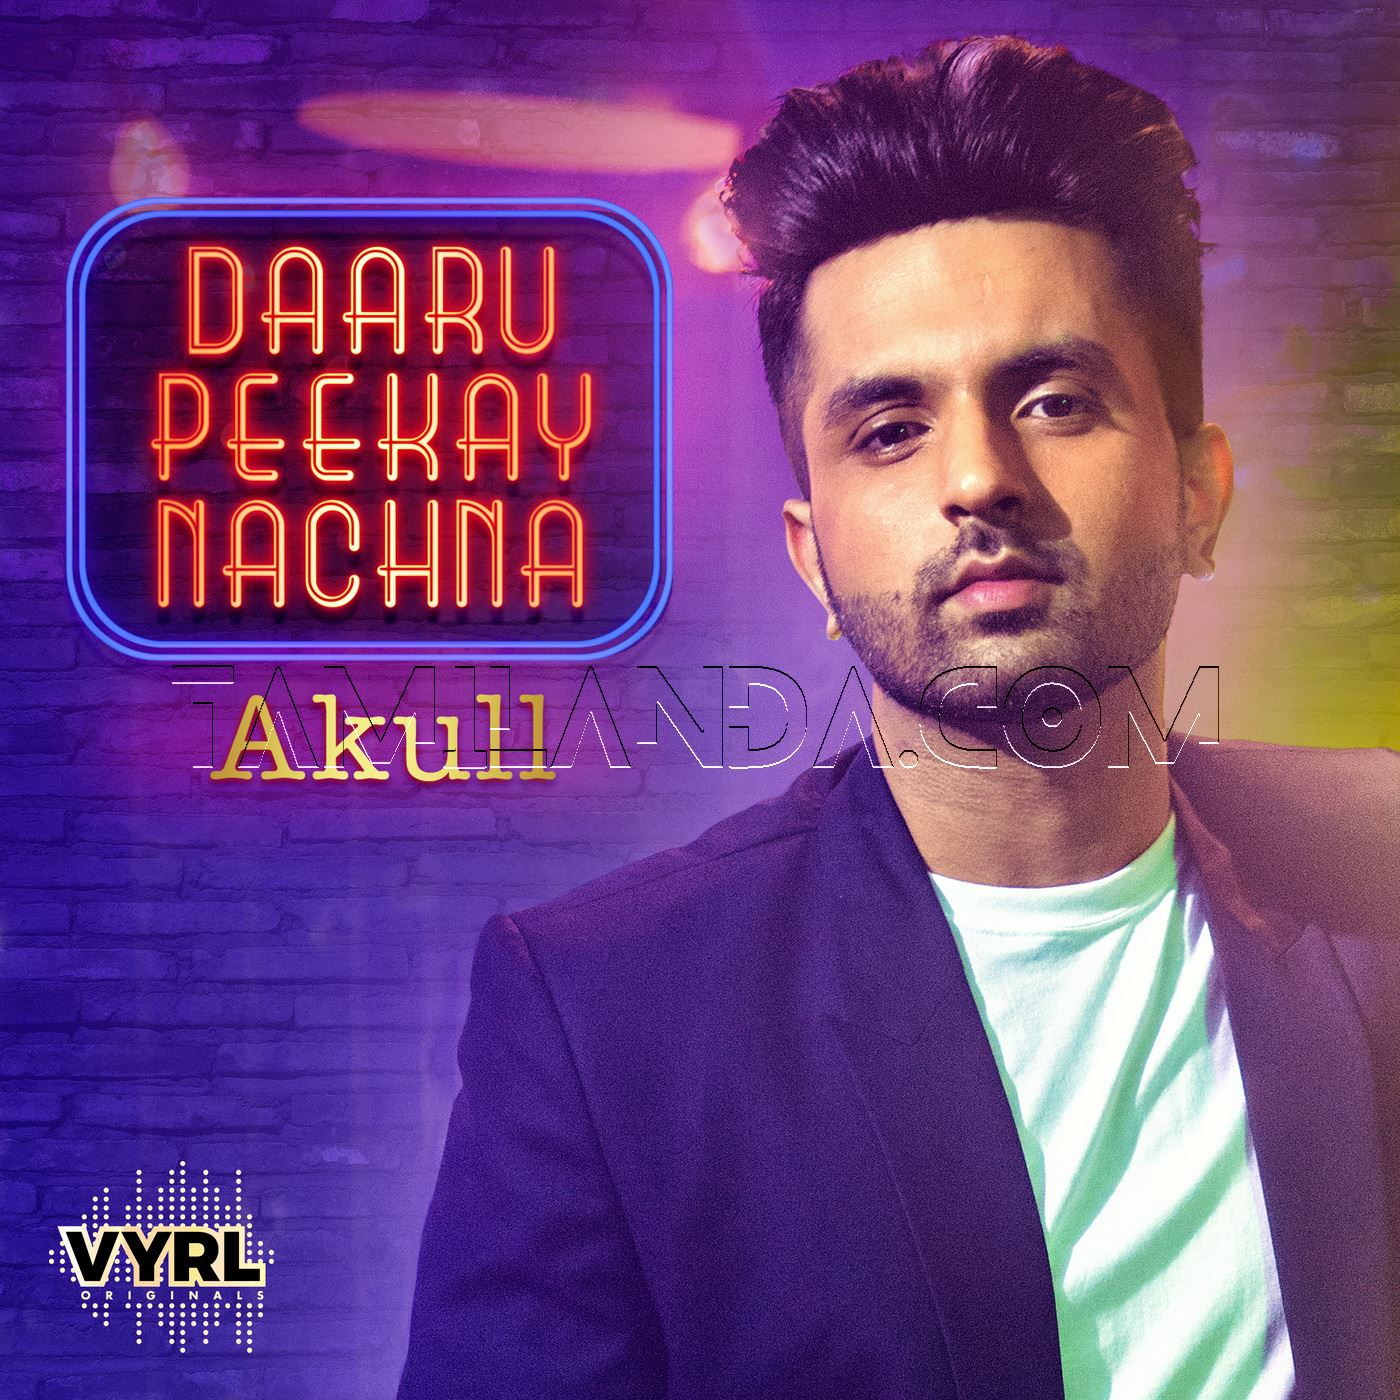 Daaru Peekay Nachna – Single FLAC Song (2018)